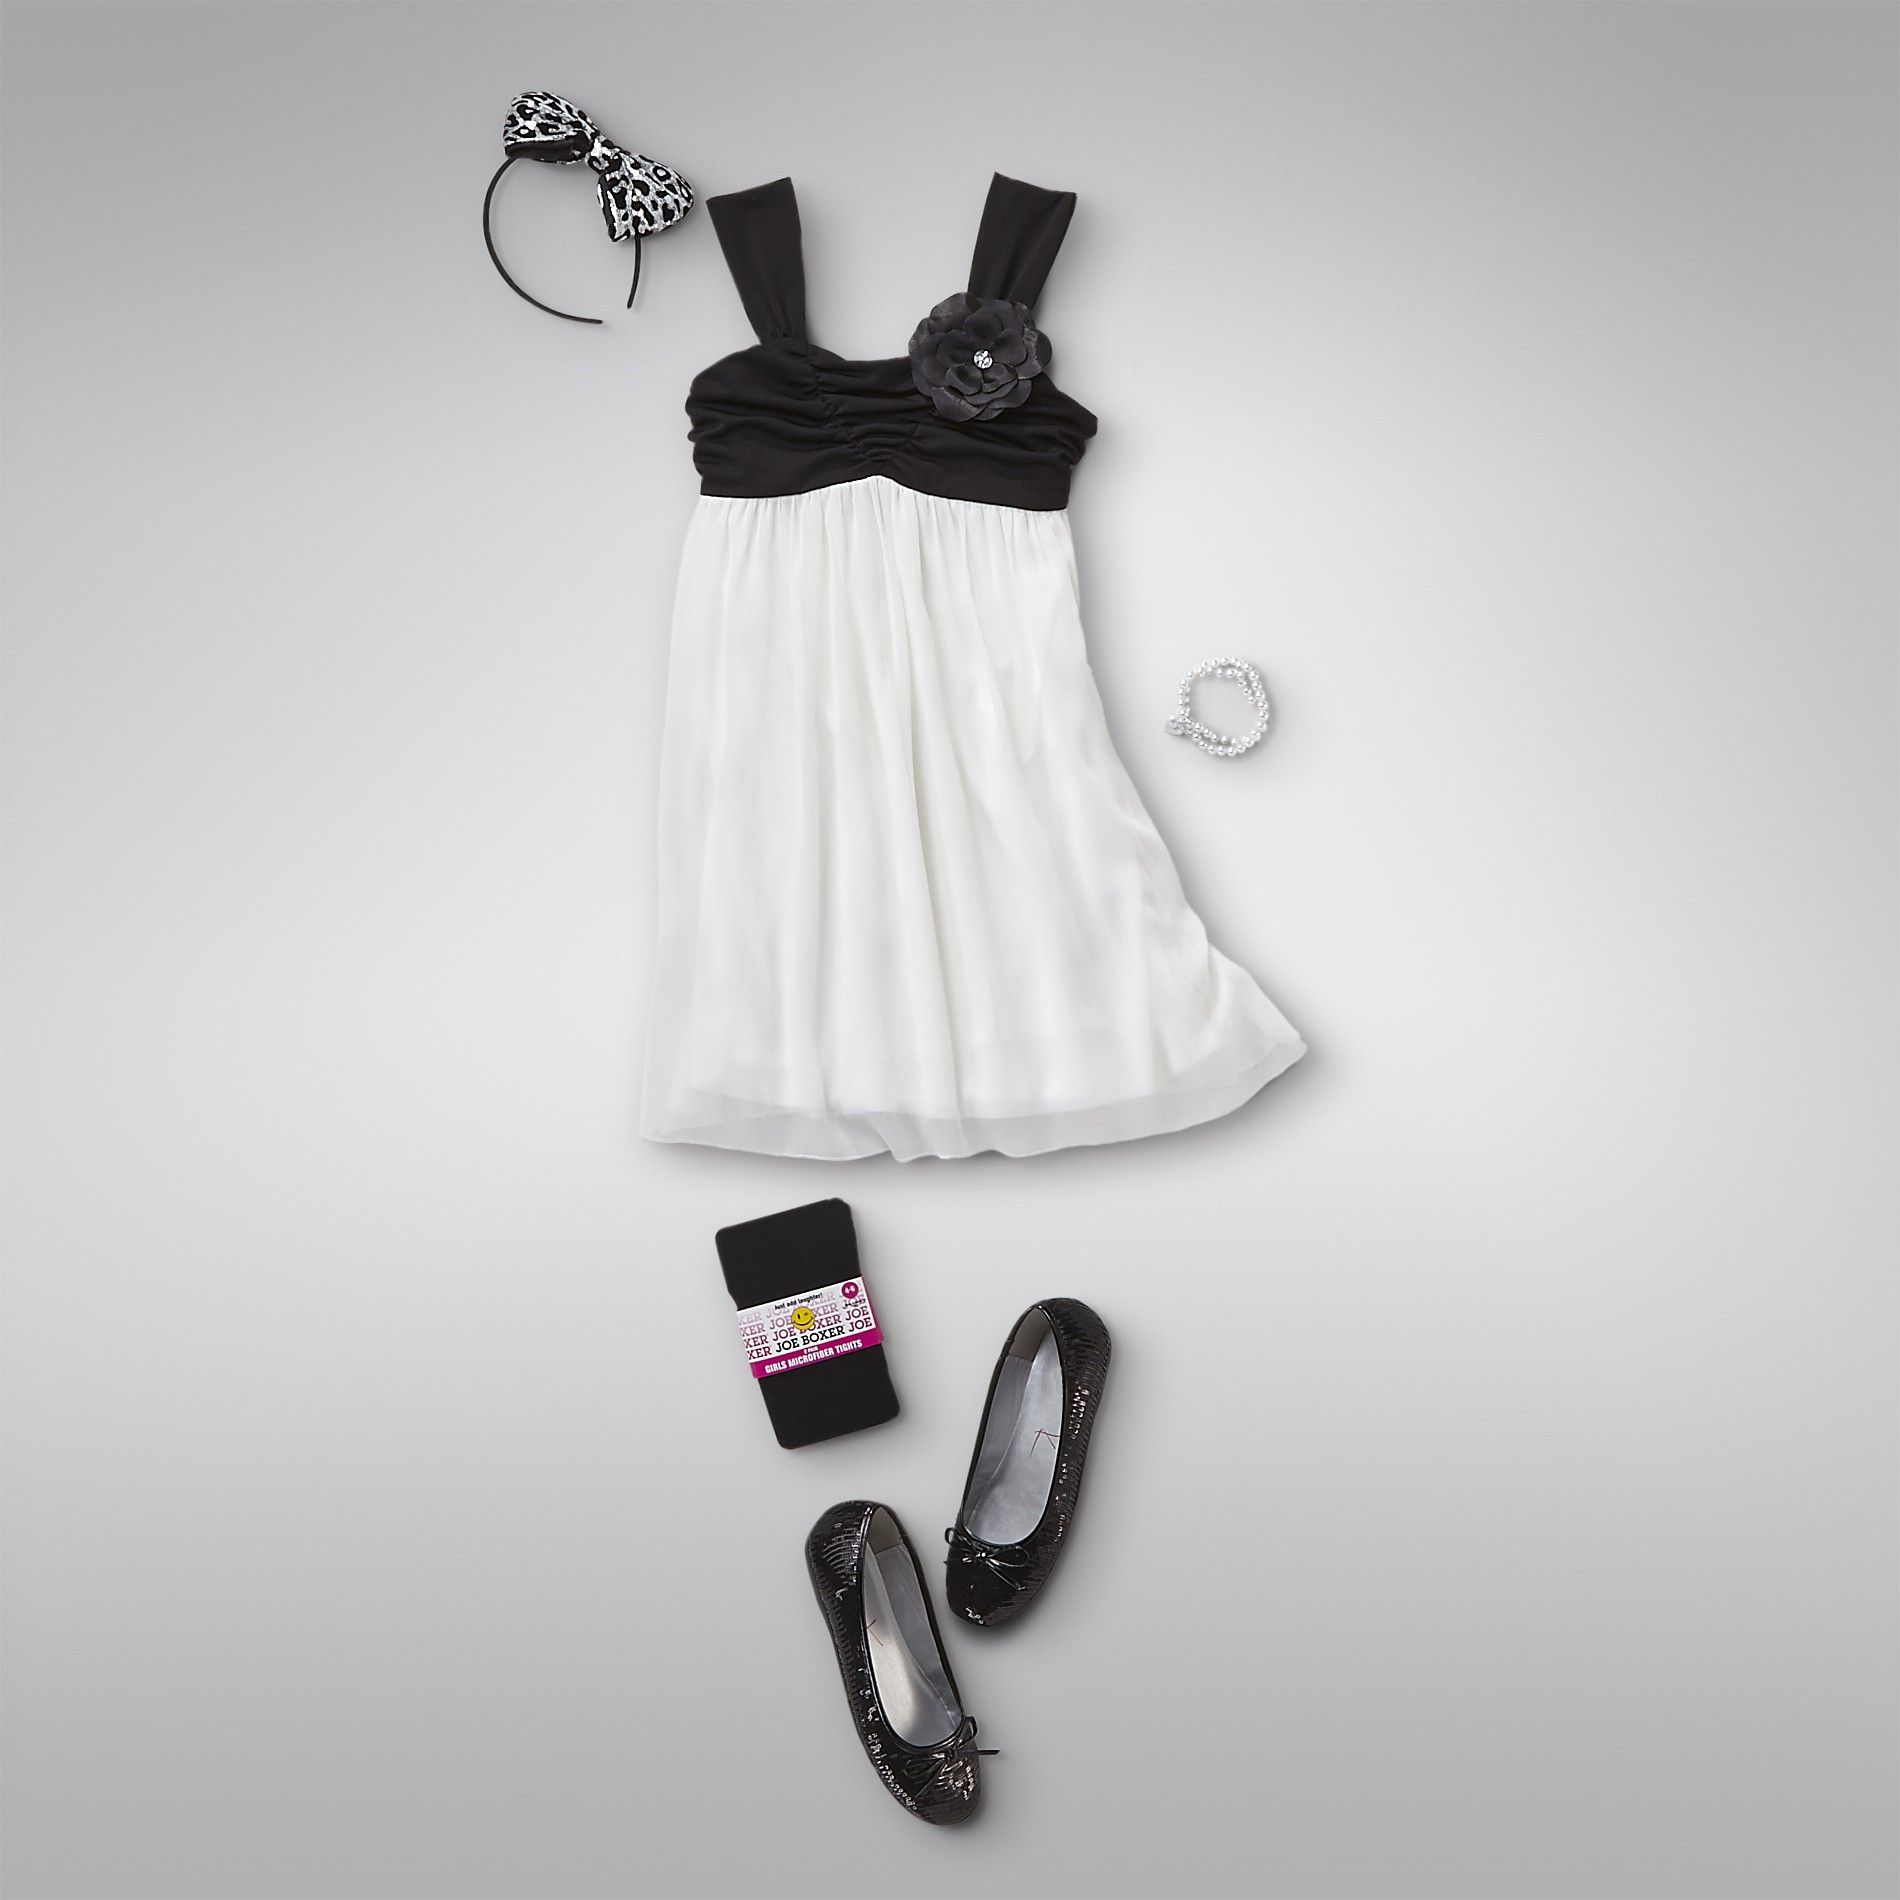 Girls Jingle Belle Outfit at Kmart.com